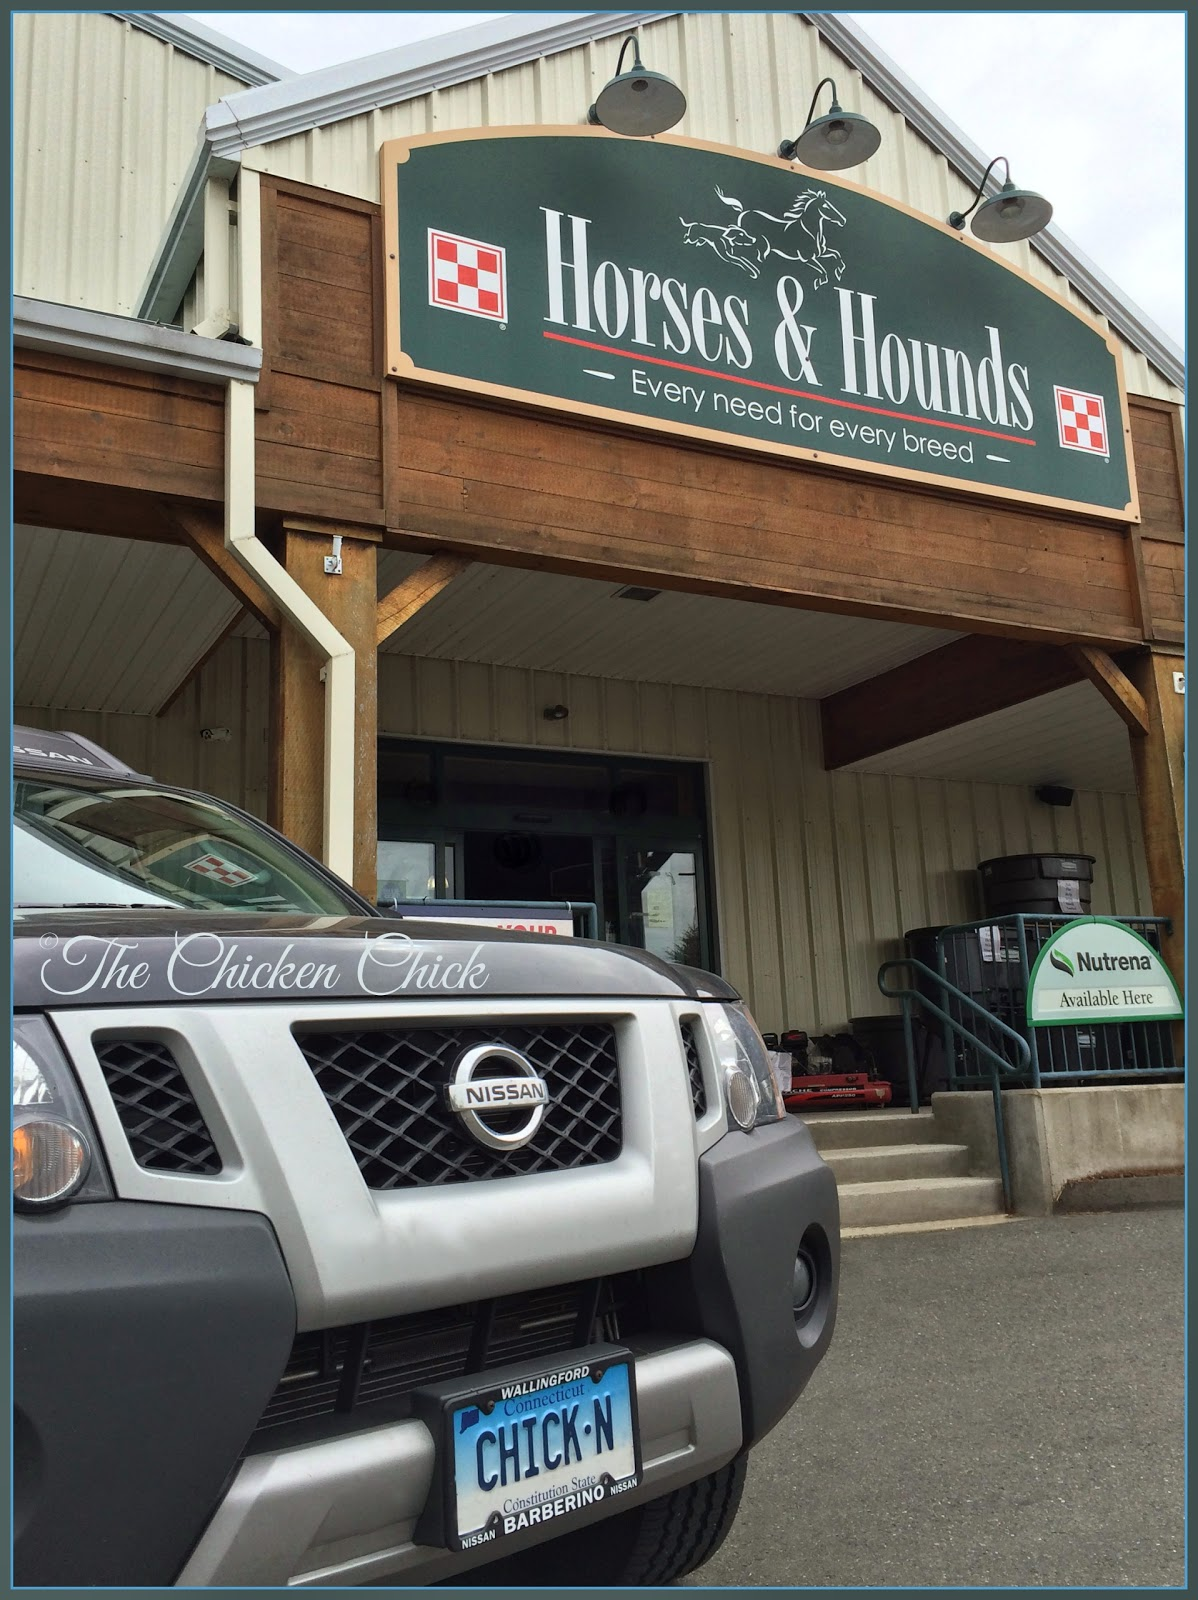 10 mintues from my house is Horses & Hounds in Granby, CT, which carries Koop Clean